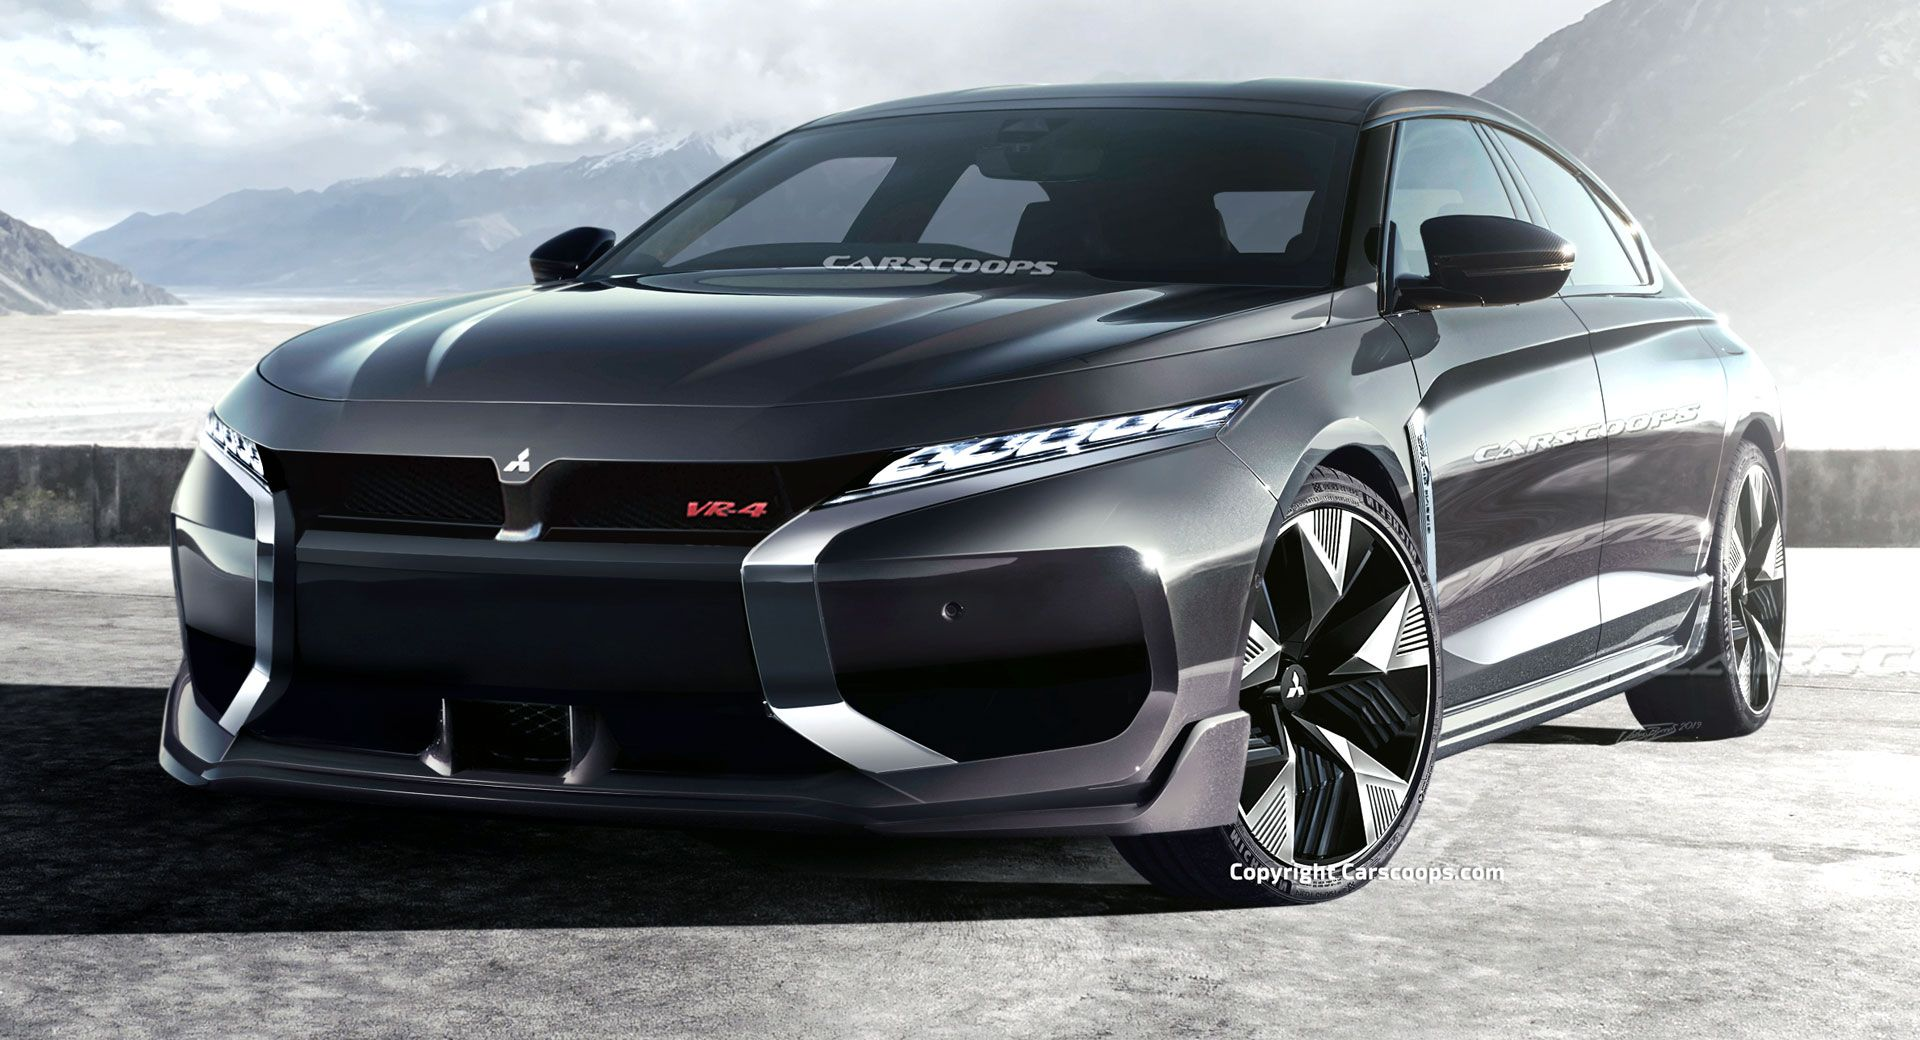 What If Mitsubishi Resurrected The Galant Nameplate With A New Vr4 Performance Model Sporting A Plug In Electric In 2020 Mitsubishi Galant Mitsubishi Mitsubishi Motors